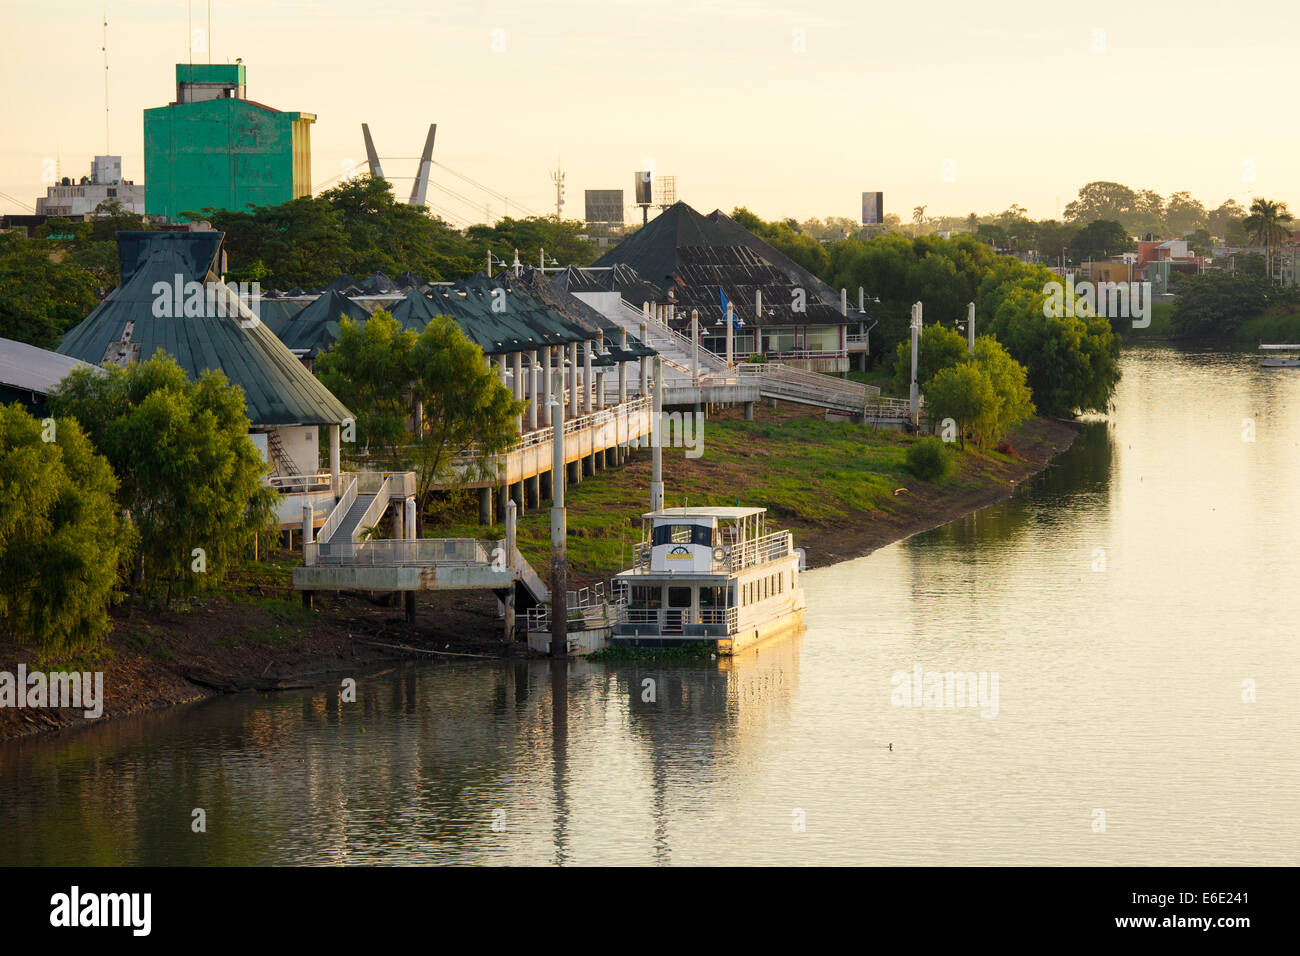 A river boat at sunset on the Grijalva River in Villahermosa, Tabasco, Mexico. - Stock Image